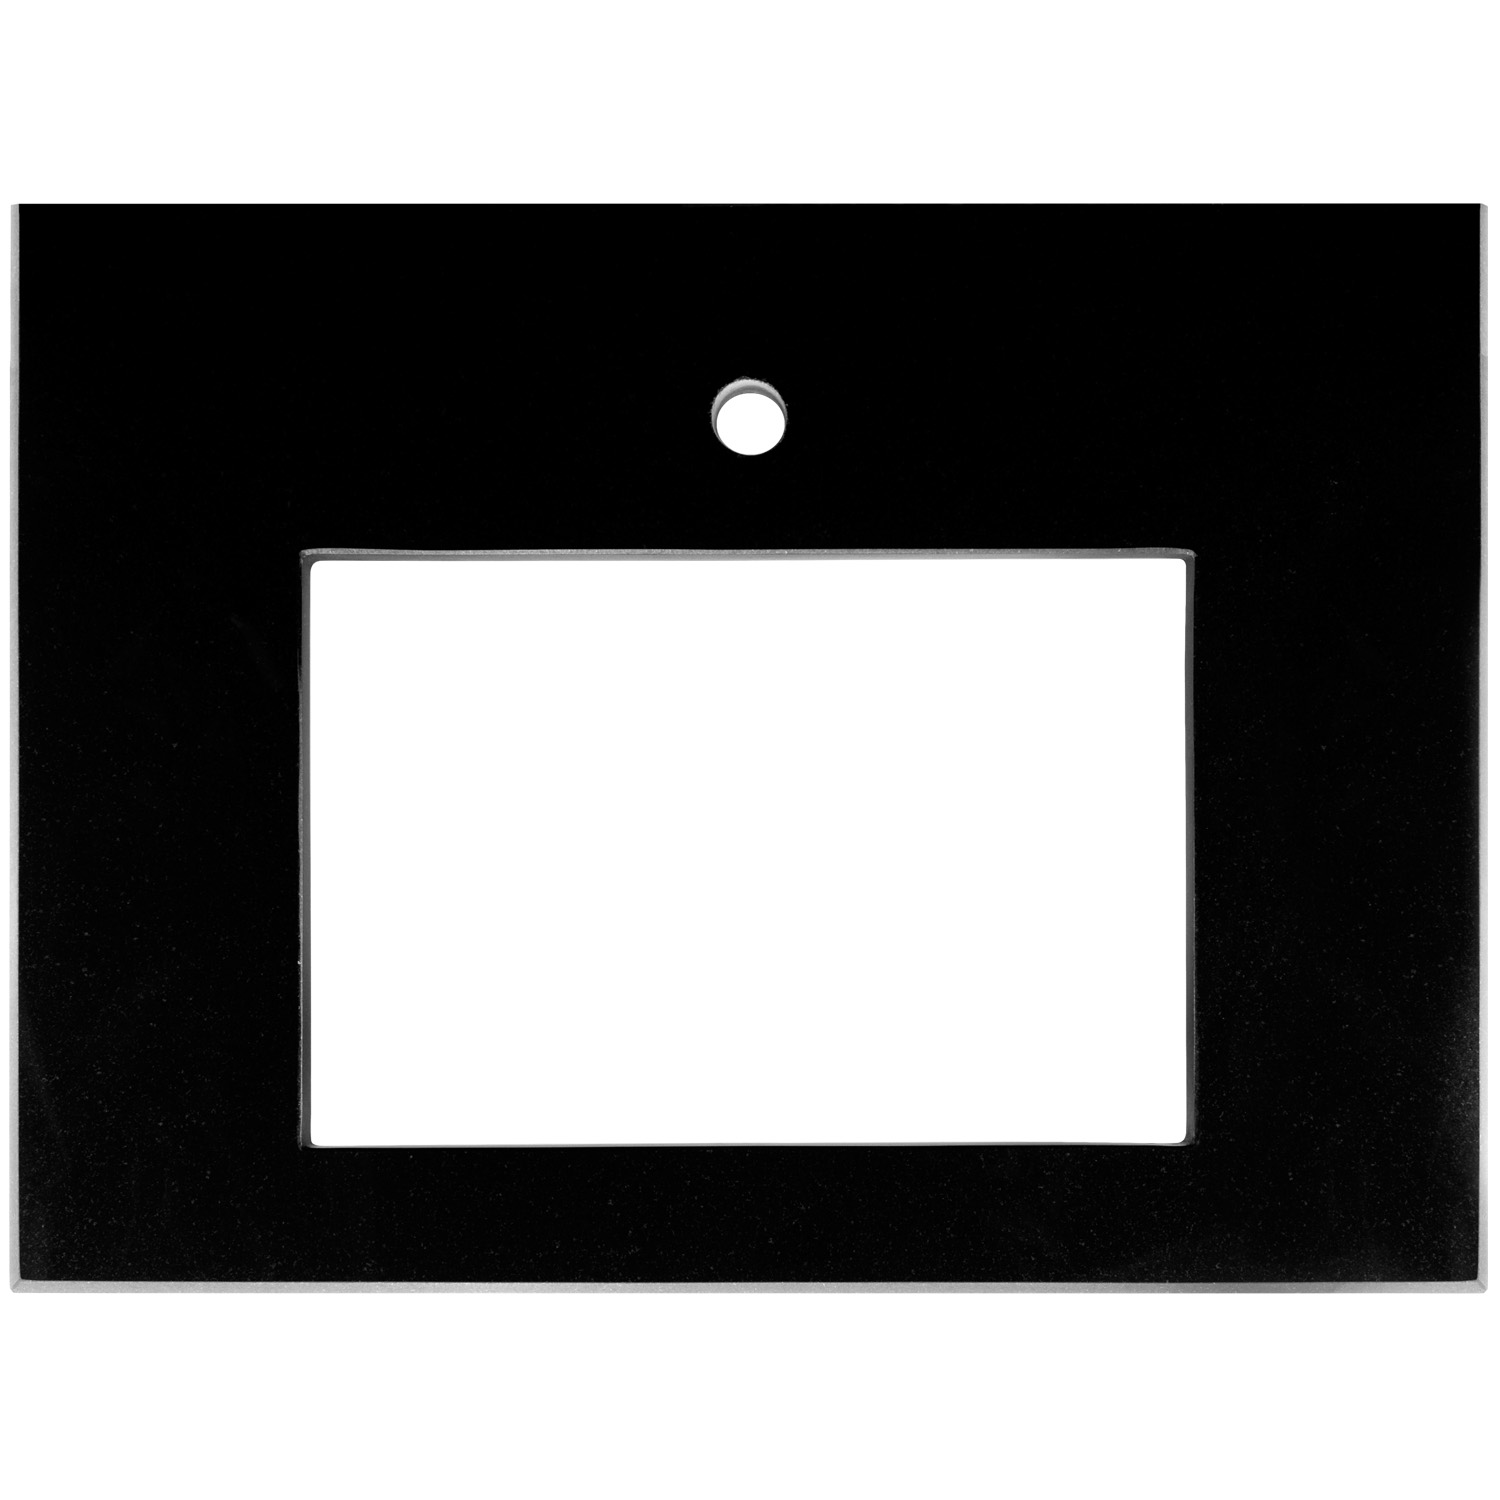 "VT30B-01 12""x18"" Sink Cutout w/ one faucet hole"